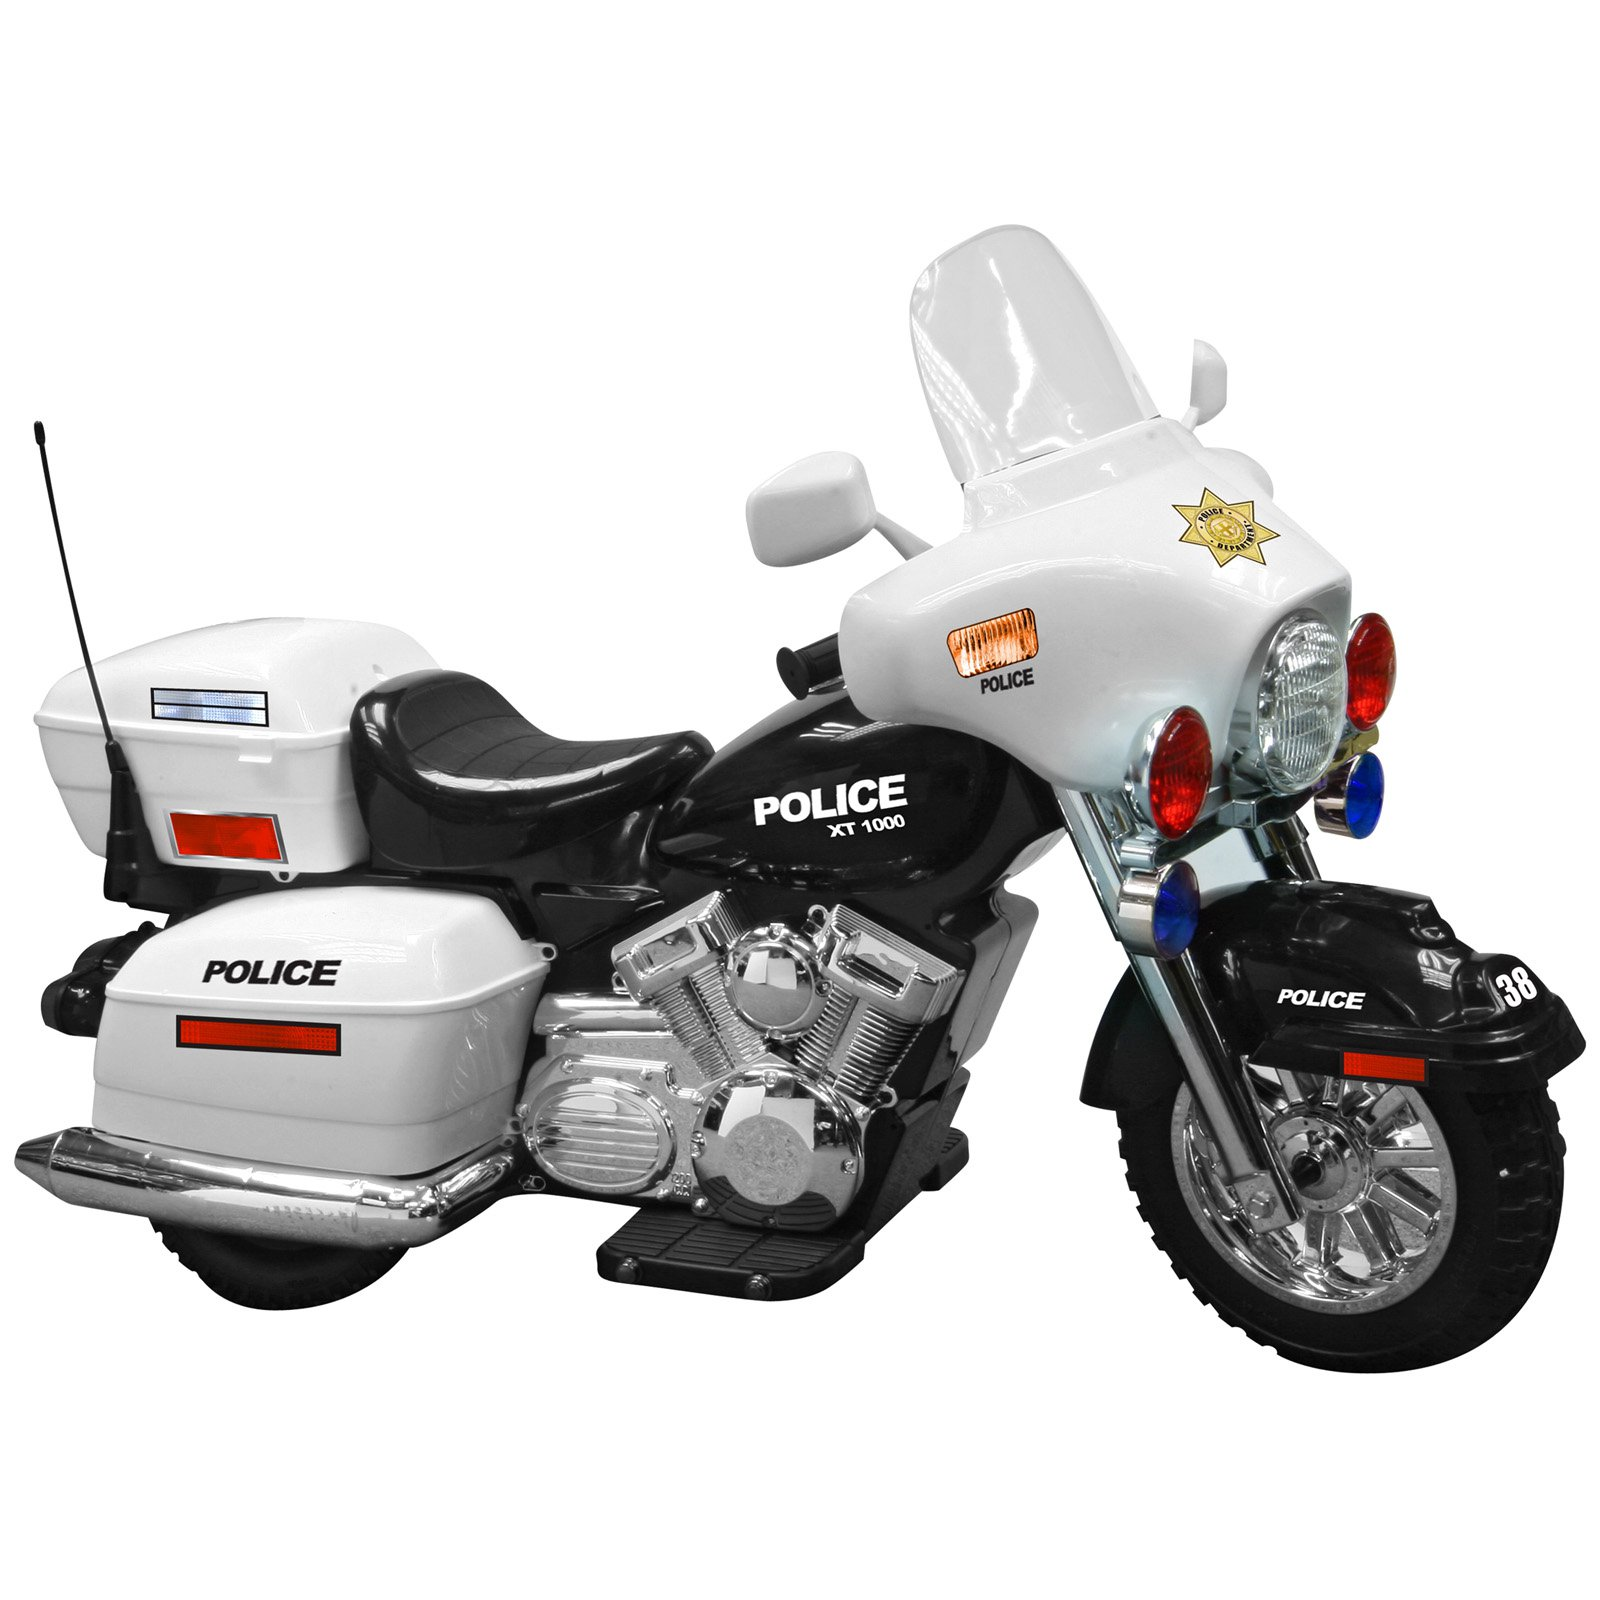 Kid Motorz Police Motorcycle Battery Powered Riding Toy Walmartcom